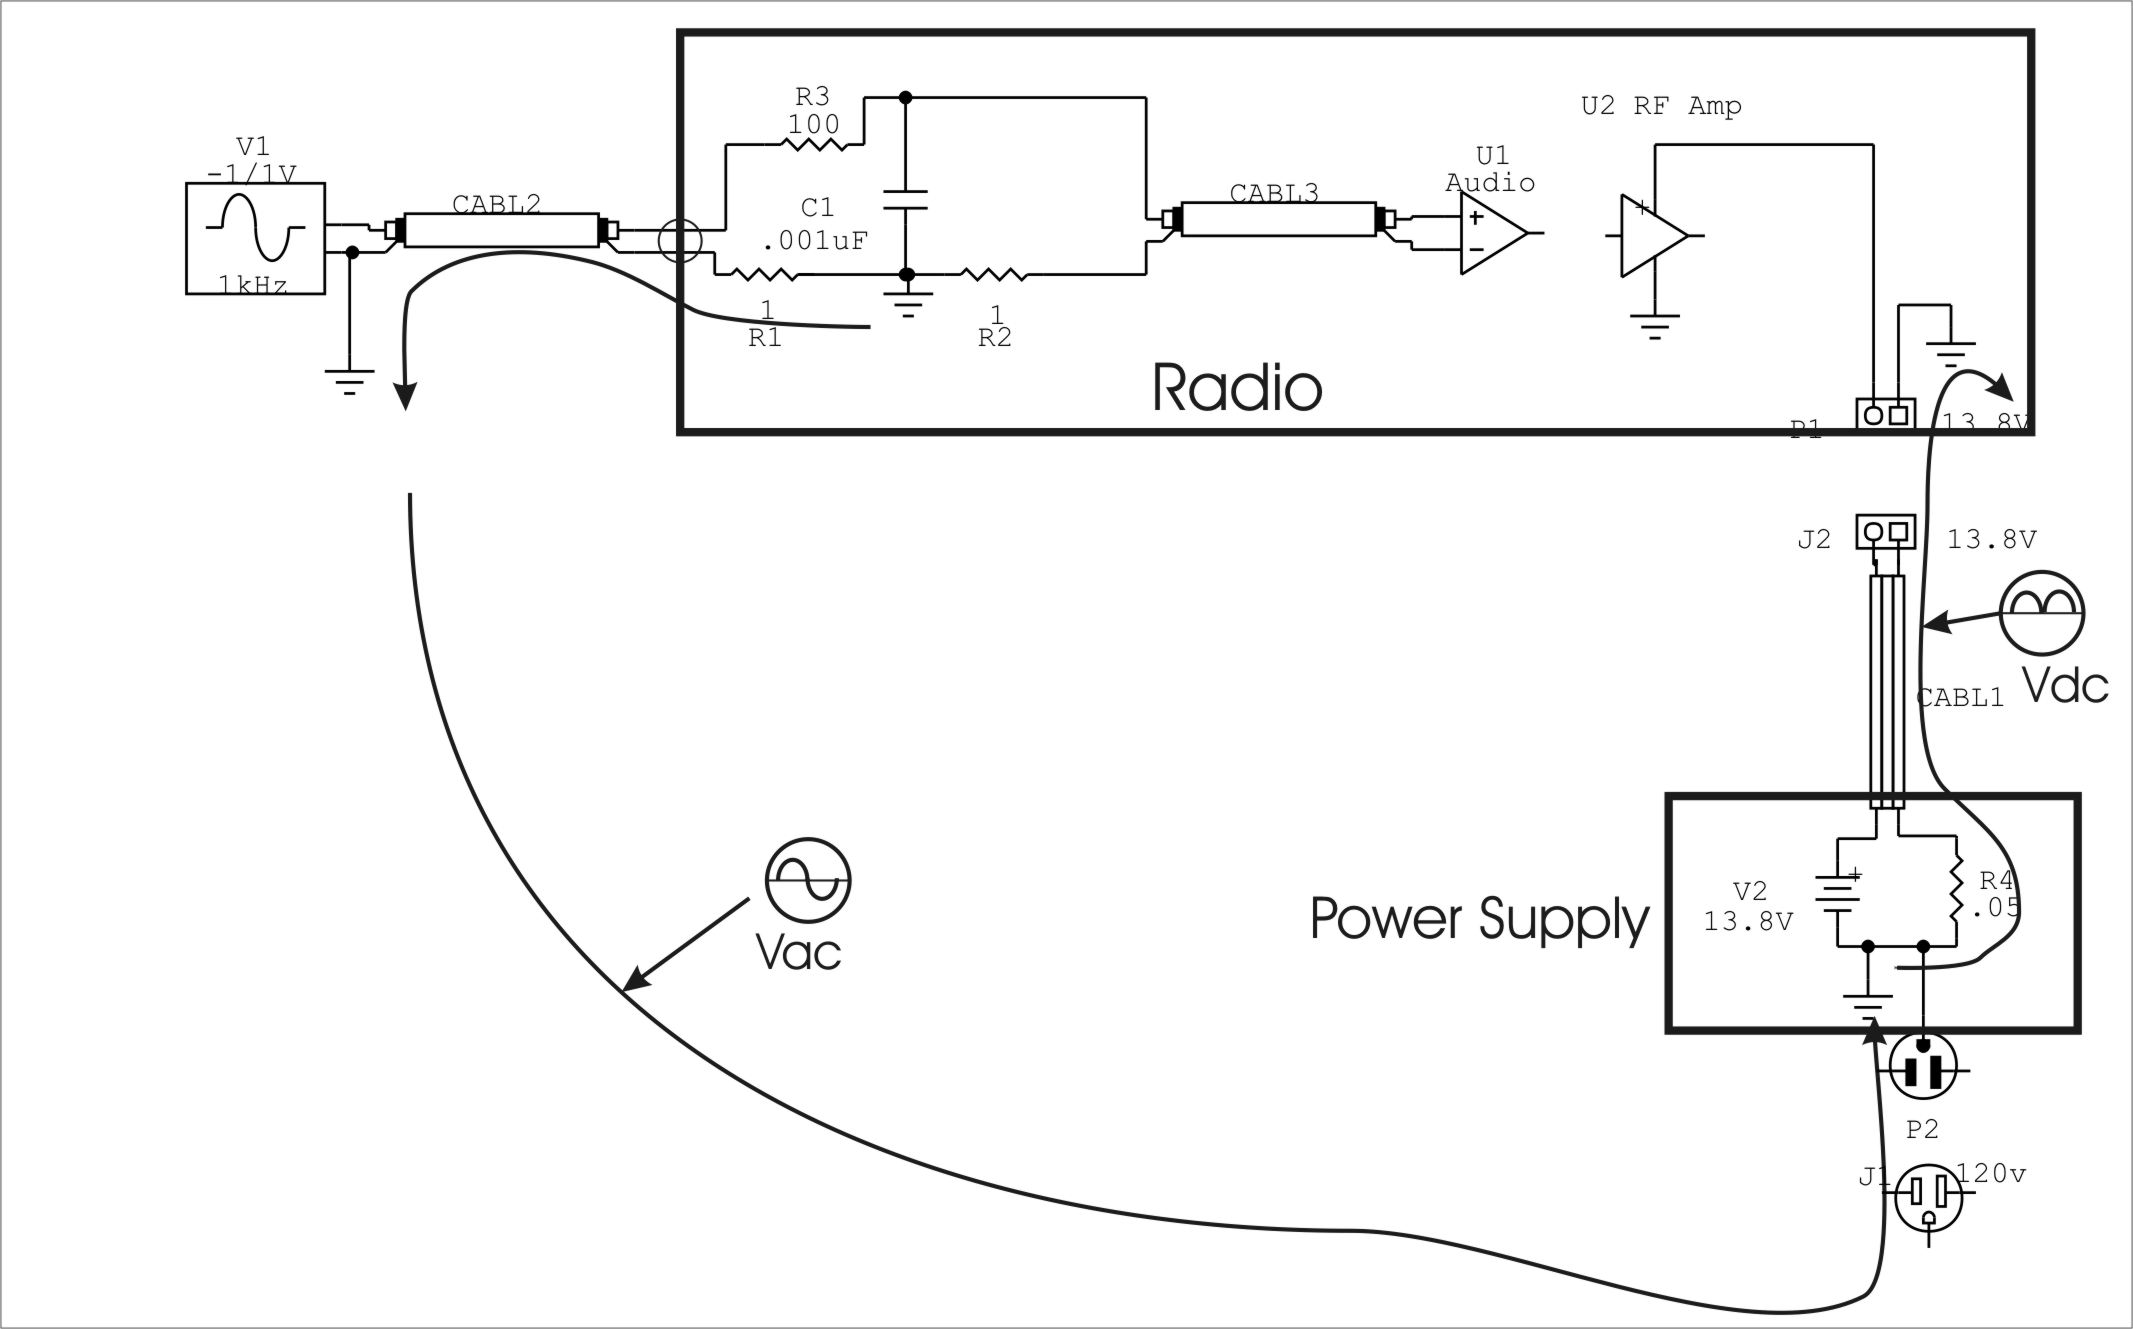 earth fault loop impedance diagram general electric wall oven wiring cables and